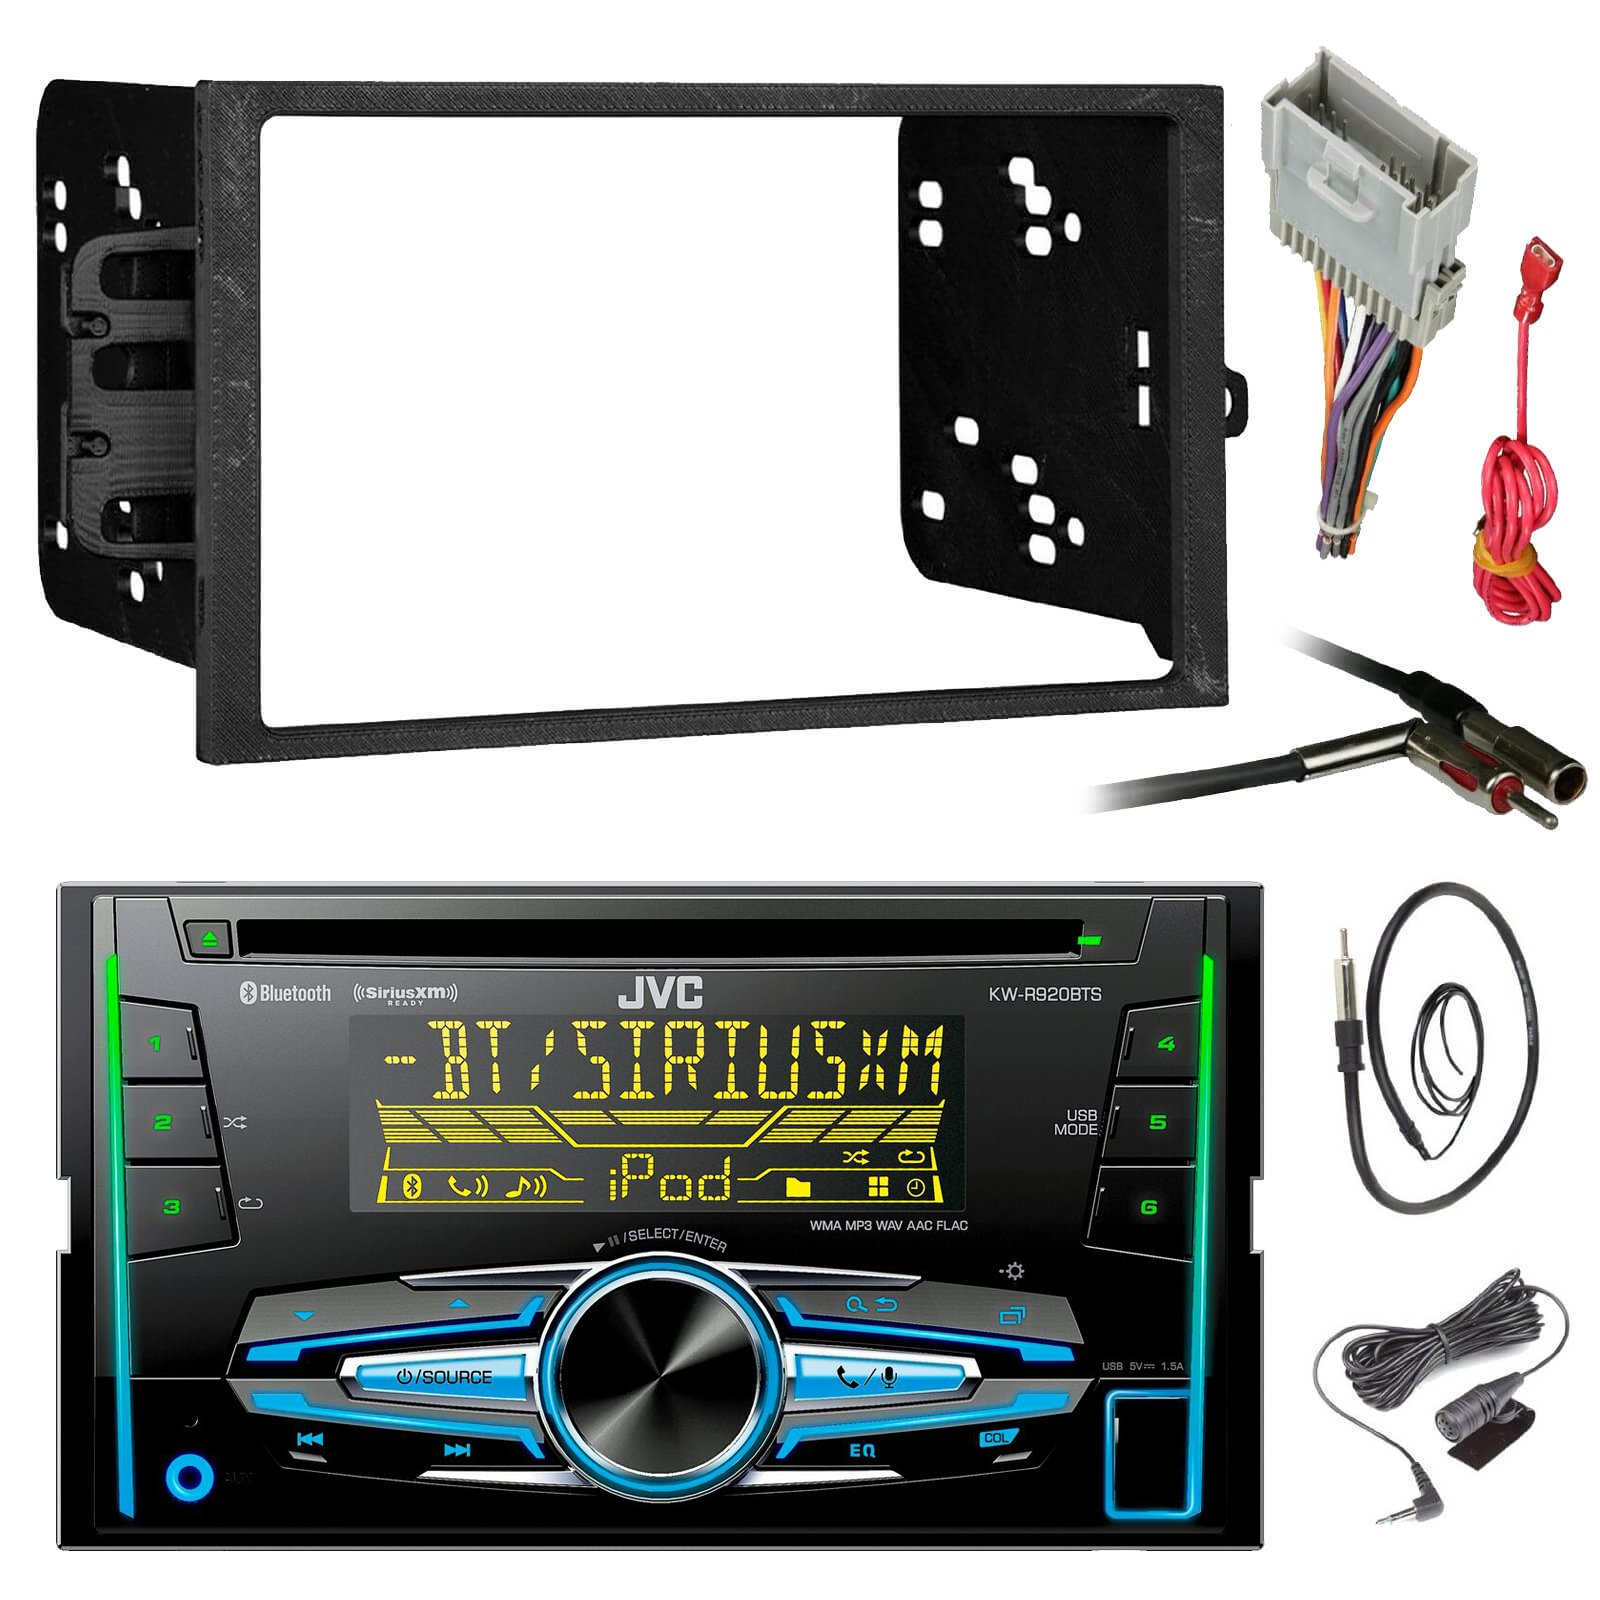 JVC KW-R920BTS Double DIN Bluetooth Car Stereo Receiver CD Player Bundle Combo With Metra installation kit for car stereo (Fits Most GM Vehicles) + Wire Harness + Enrock 22'' Radio Antenna With Adapter by Enrock JVC Metra